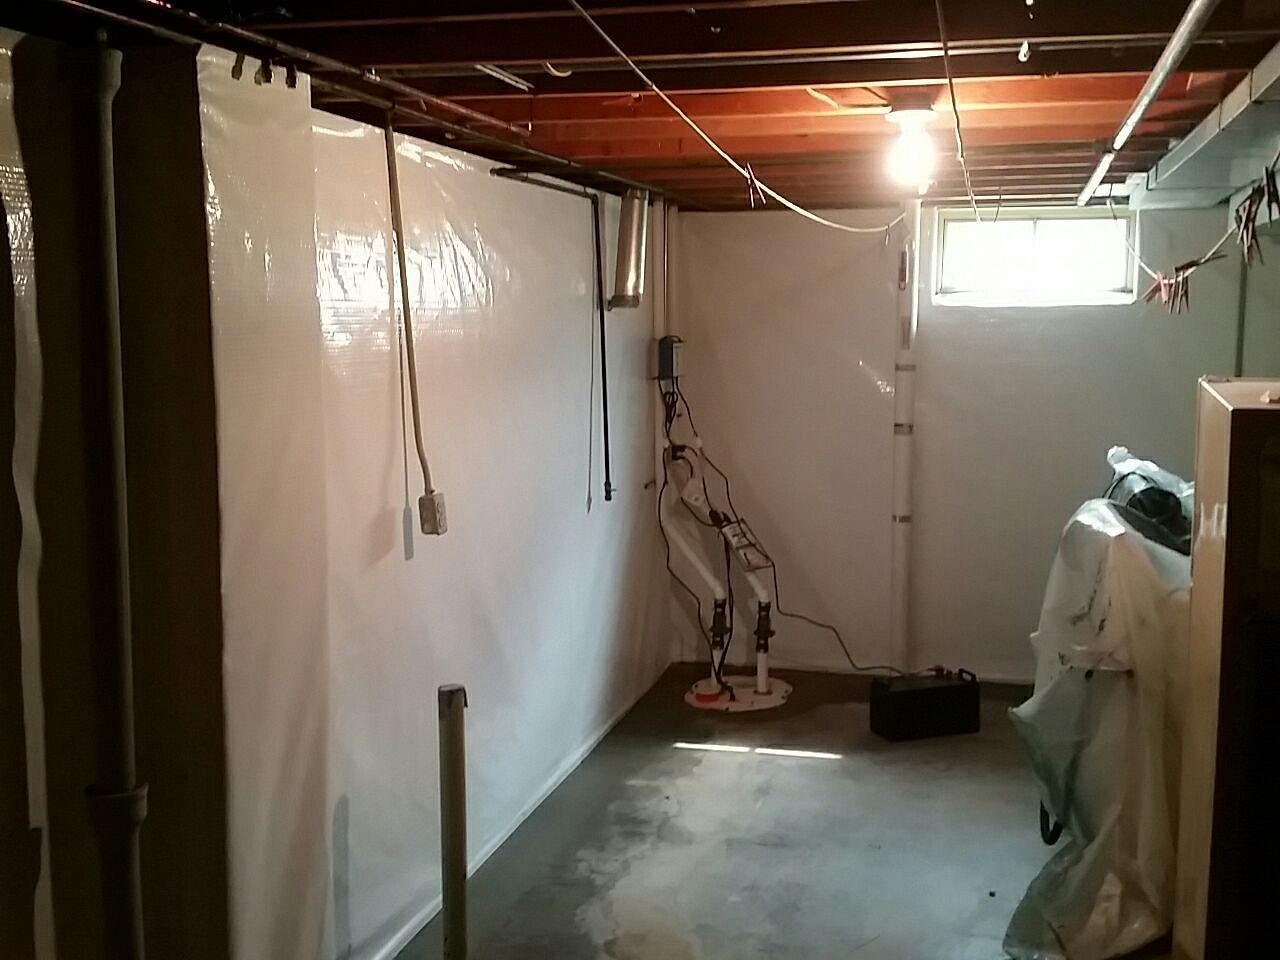 CleanSpace and WaterGuard are installed around the basement perimeter, allowing the space to still be used for recreational or storage purposes.